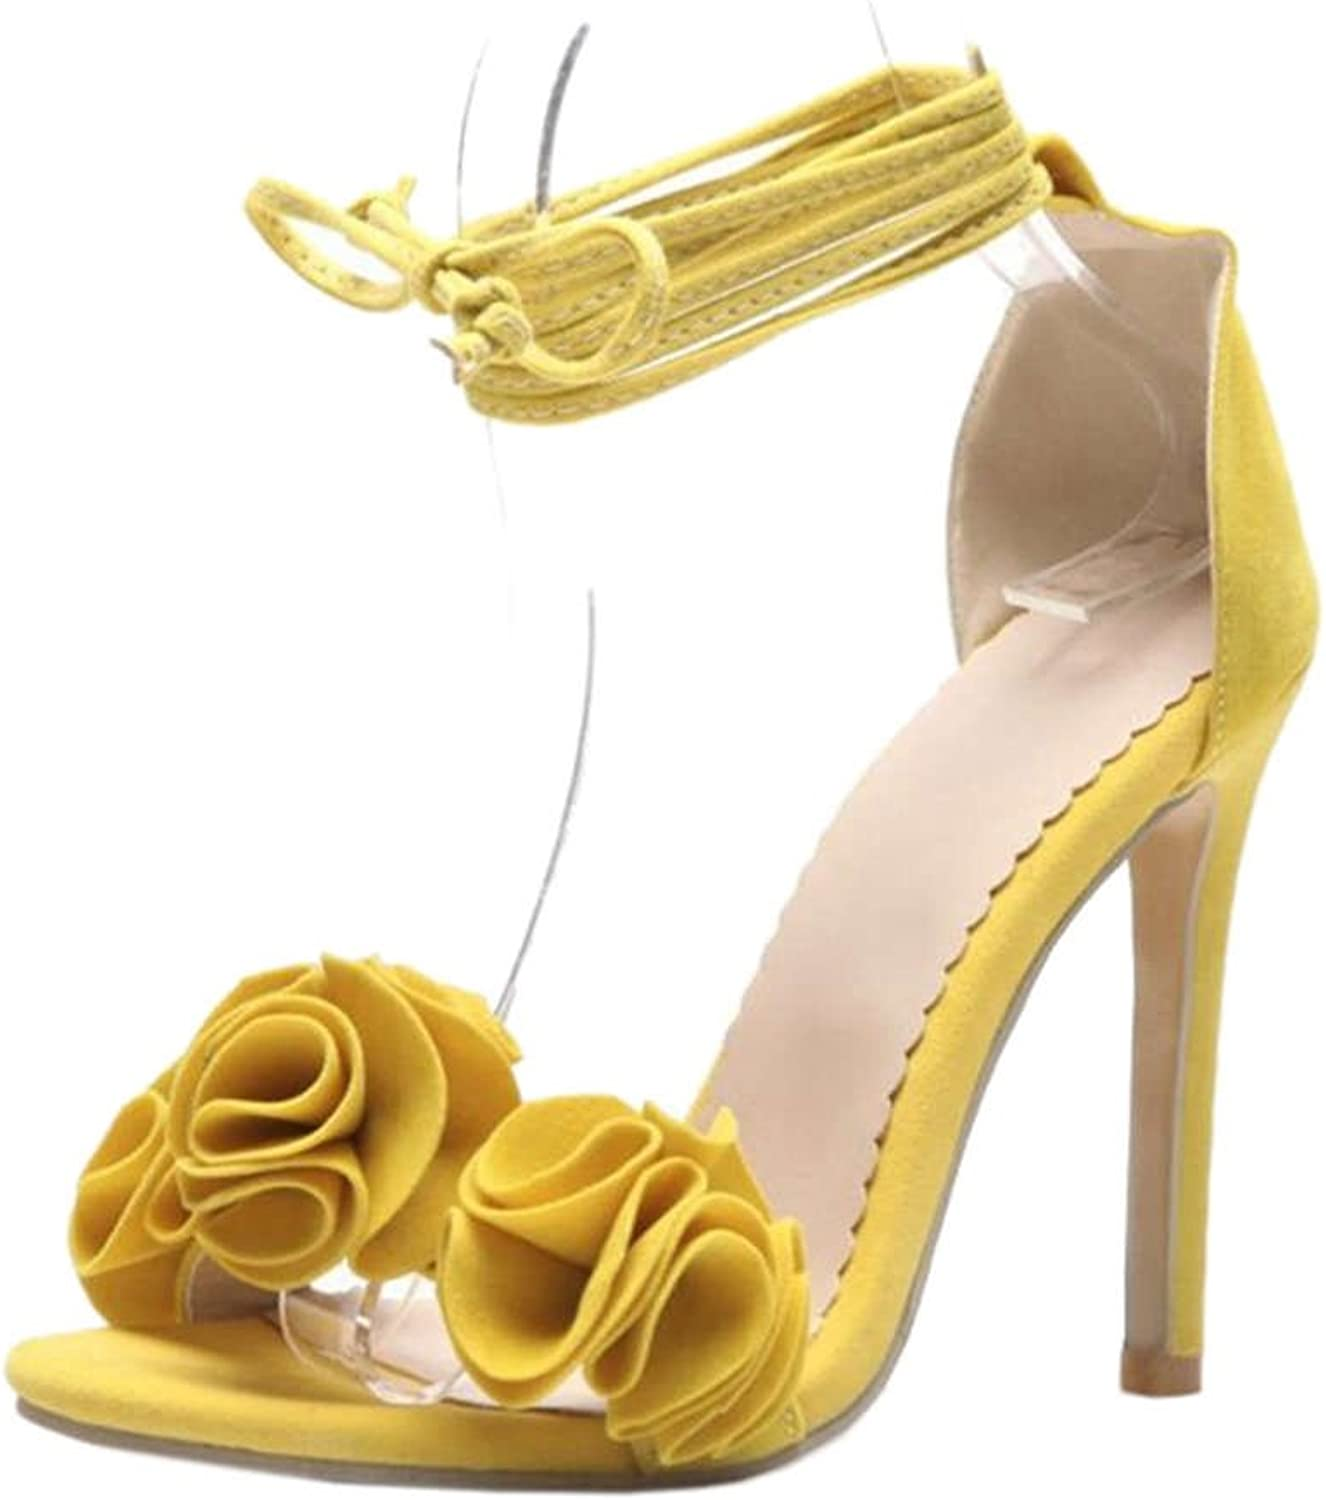 SJJH Sandals with Stiletto and Nice Flowers Cross Straps Sandals with Beautiful Flowers for Evening Parties